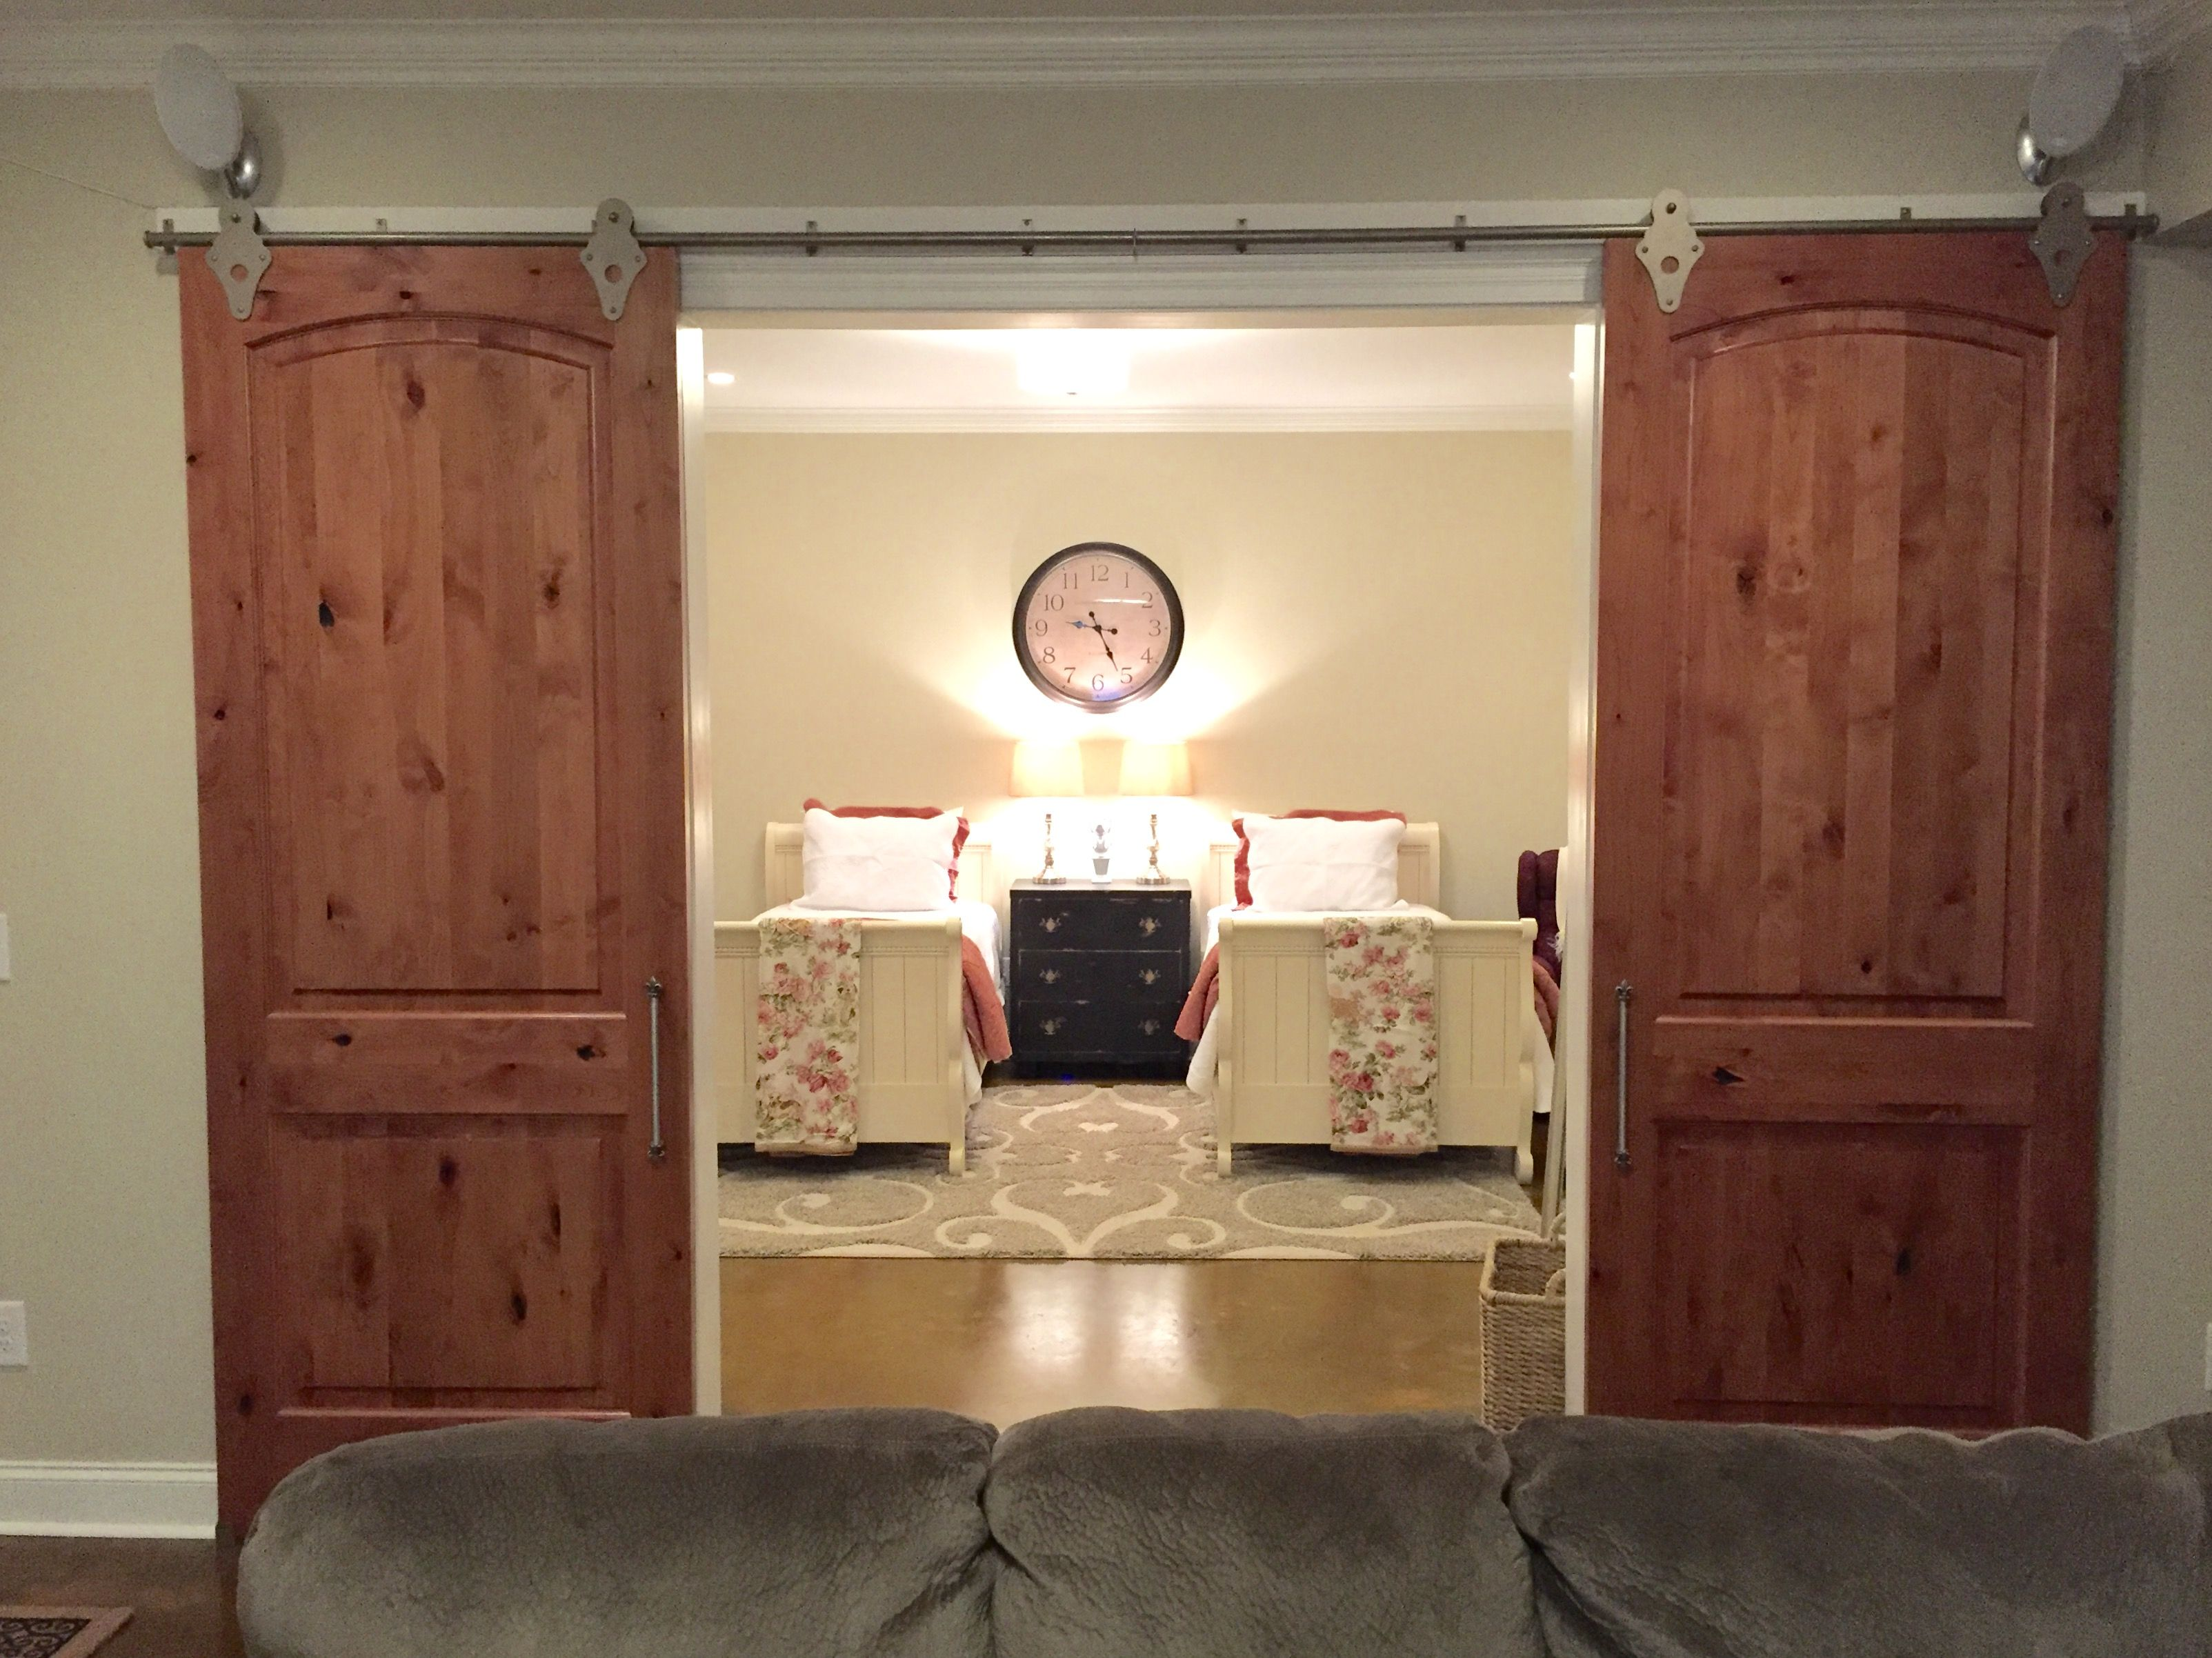 Guest Suite Barn Doors Manchester Tan Walls Stained Concrete